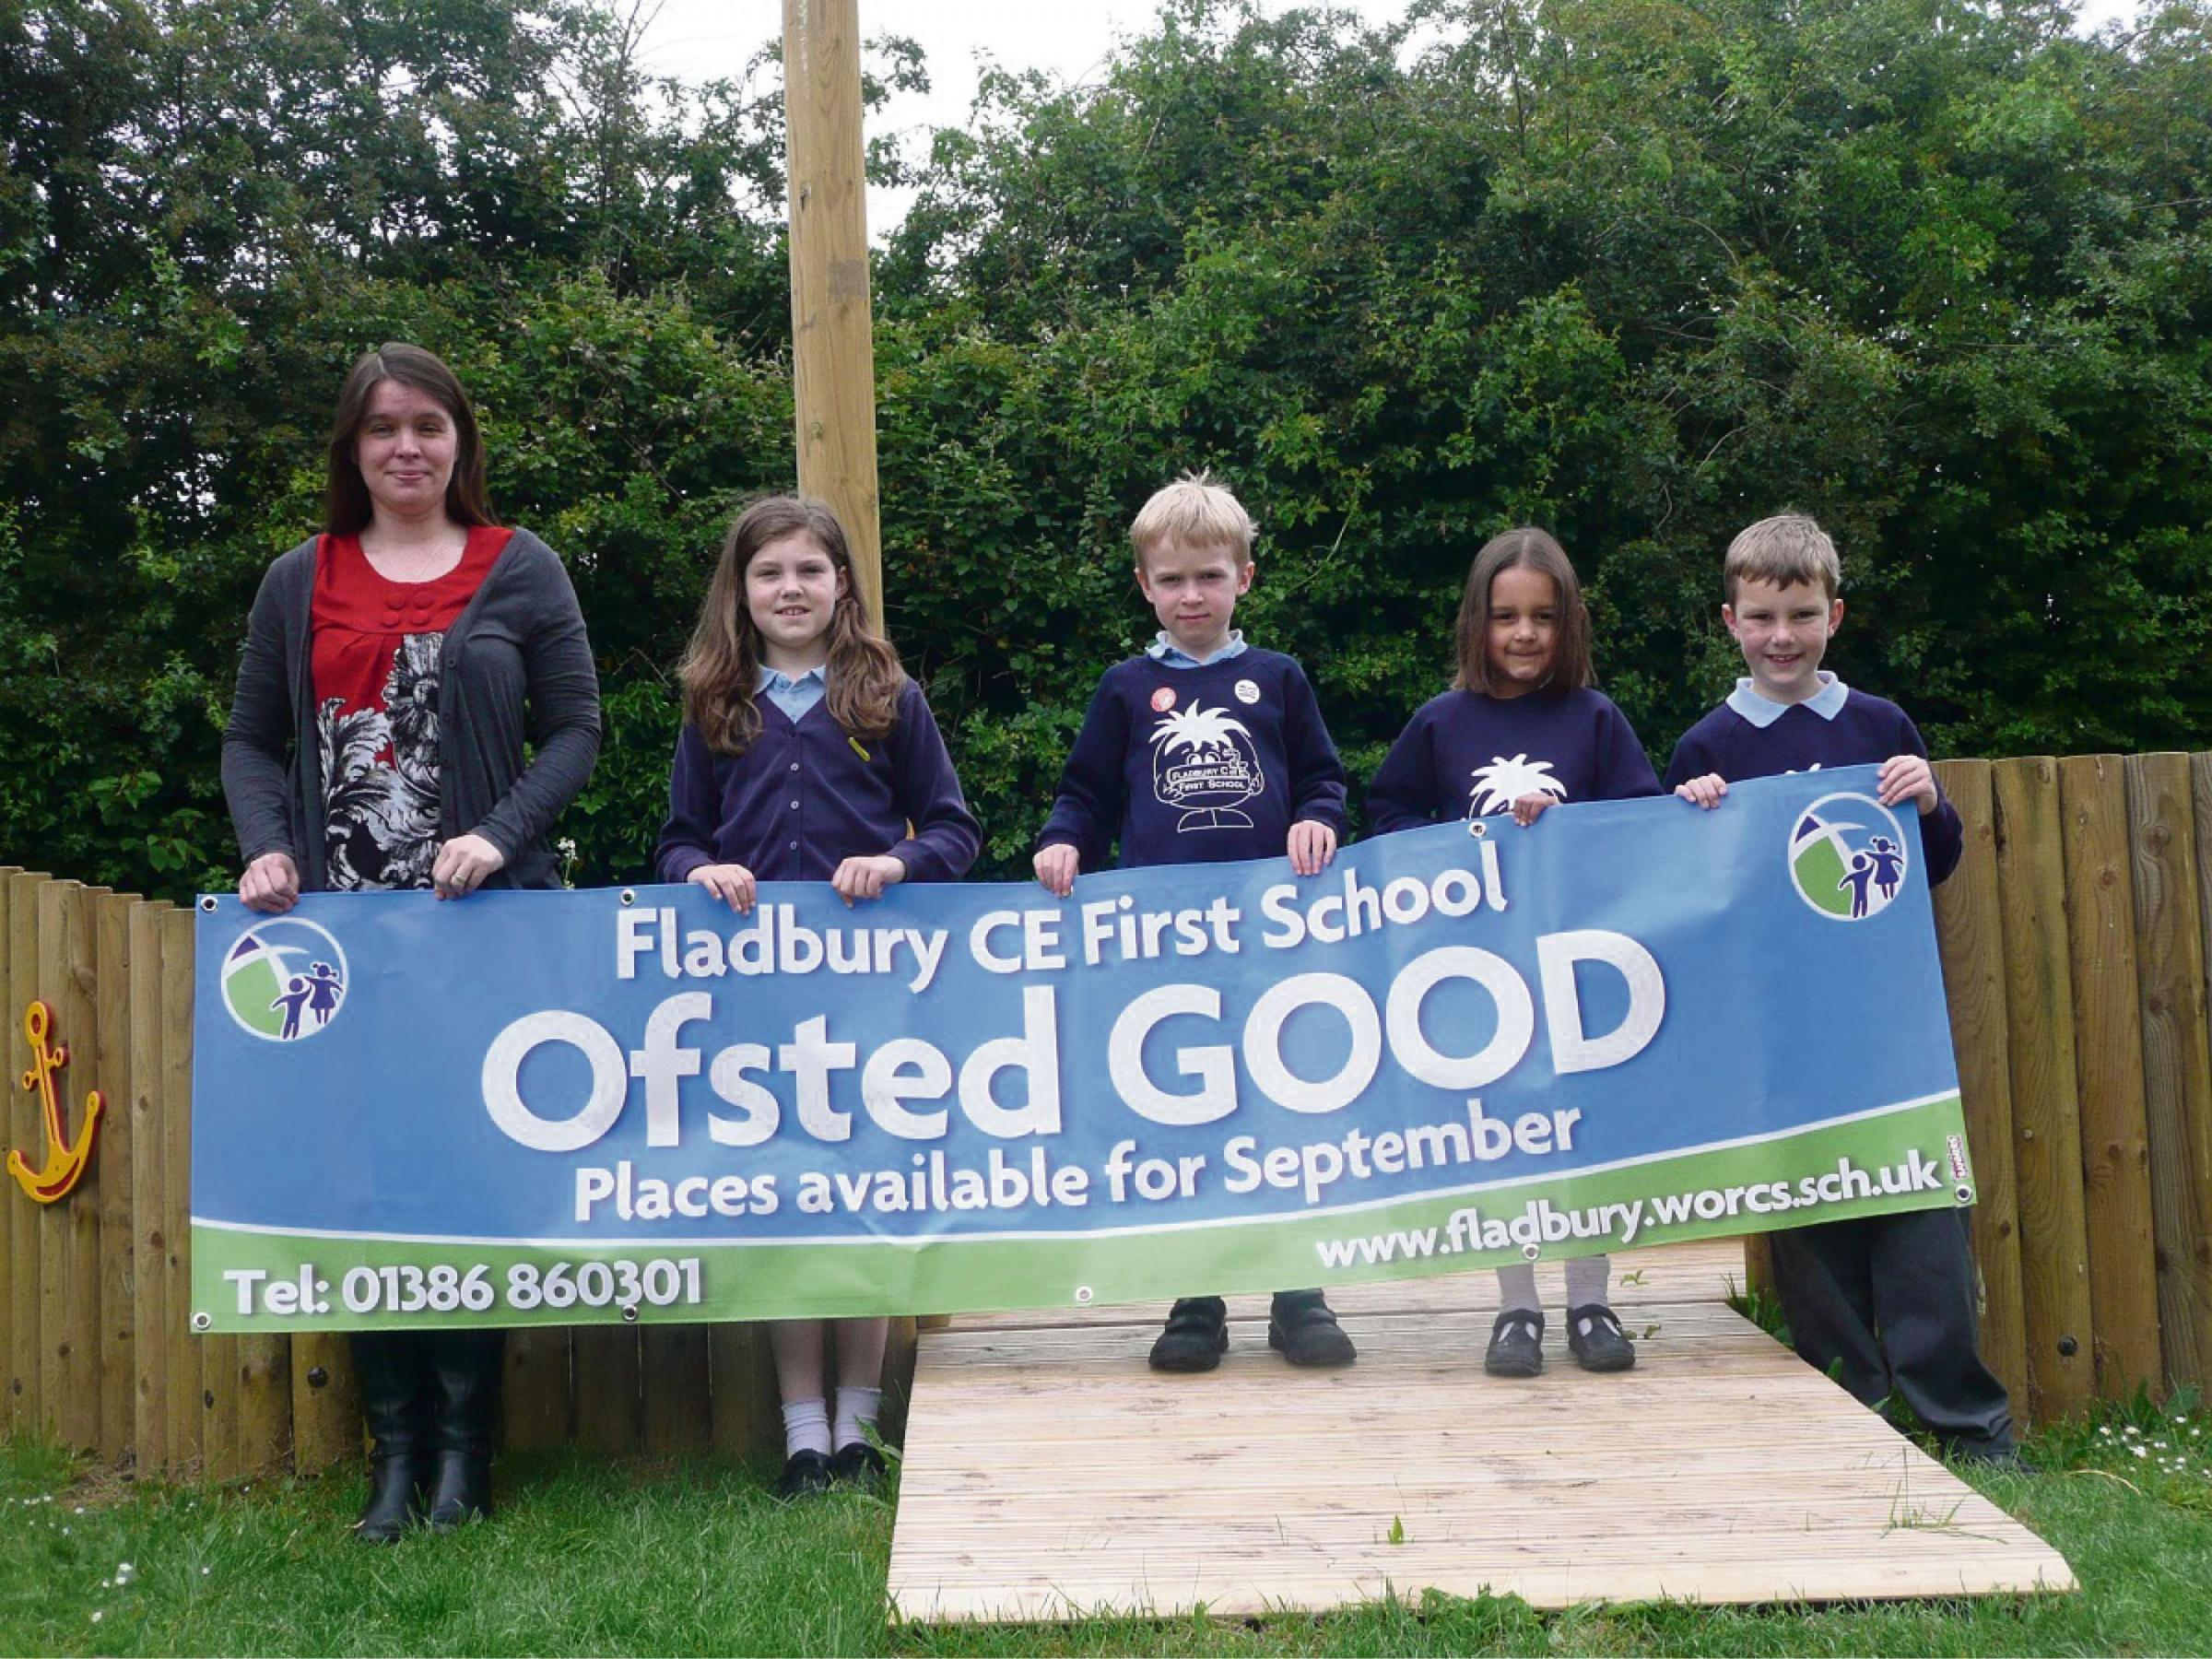 Fladbury CE First School headteacher Julie Wilson and pupils celebrate the school's good Ofsted rating